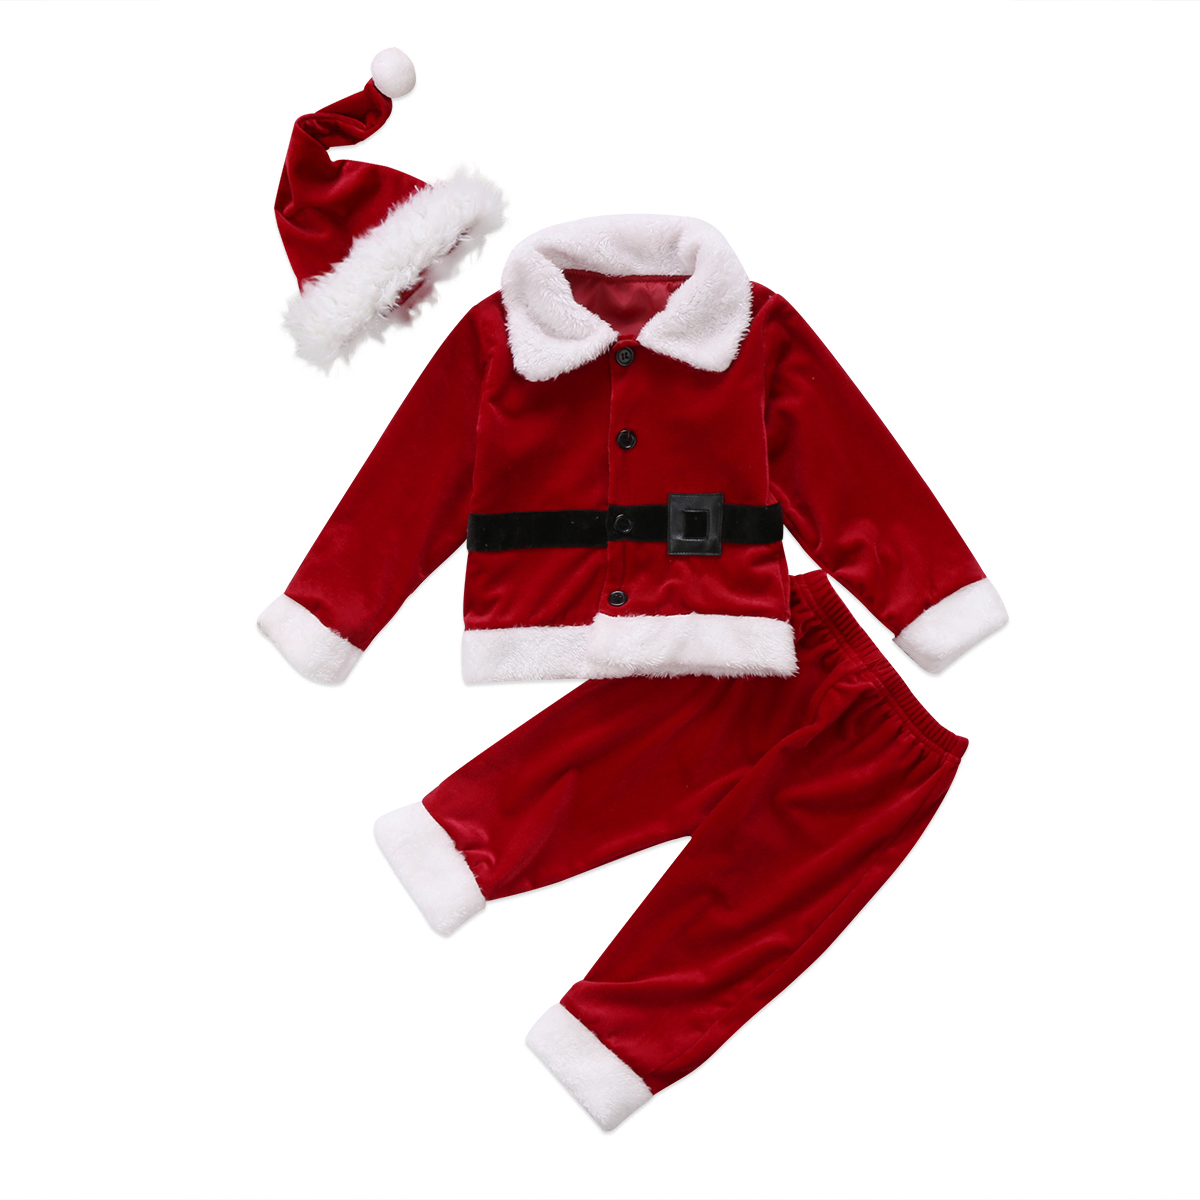 2017 New year kid baby boys girls Christmas Costume Santa Claus Suit Christmas Clothes Tops+Pant 2pcs Boys girl Kids Clothes sr039 newborn baby clothes bebe baby girls and boys clothes christmas red and white party dress hat santa claus hat sliders